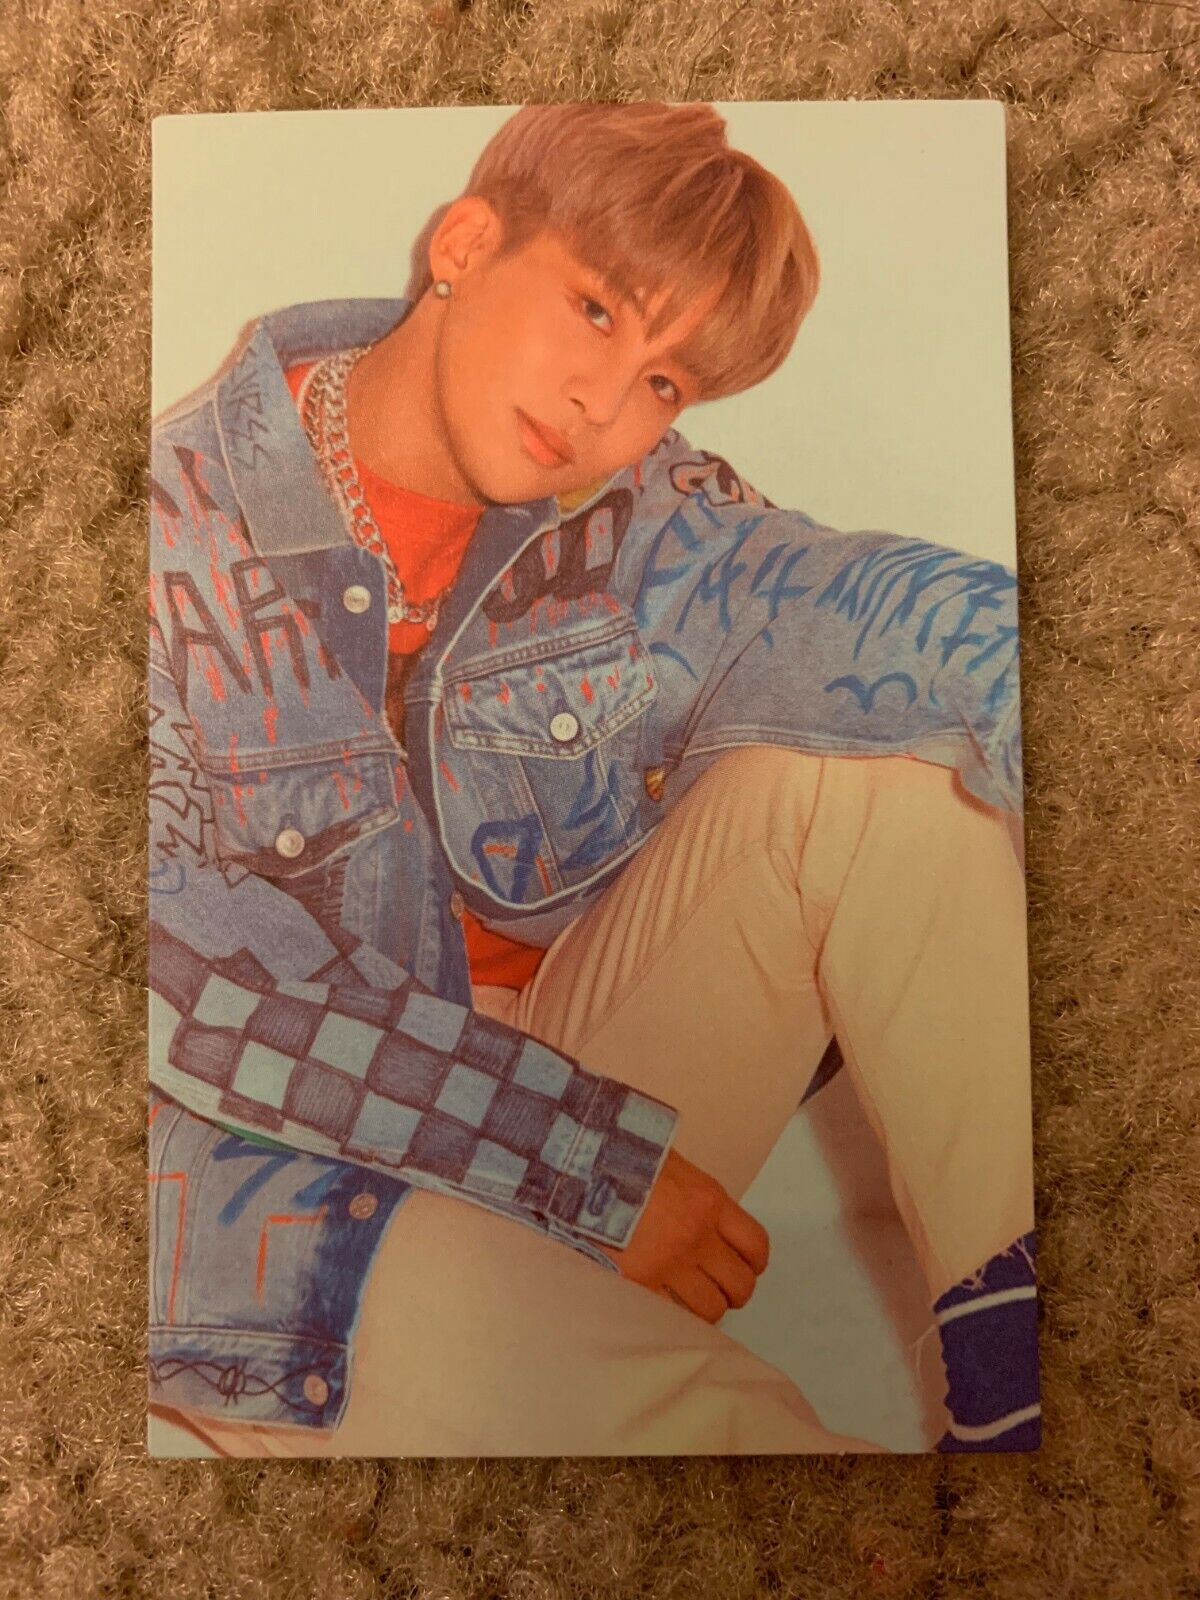 ***UPDATED***ATEEZ One To All Treasure EP. 3 Photocards (DM for Stamp Shipping) Jongho Illusion MMT